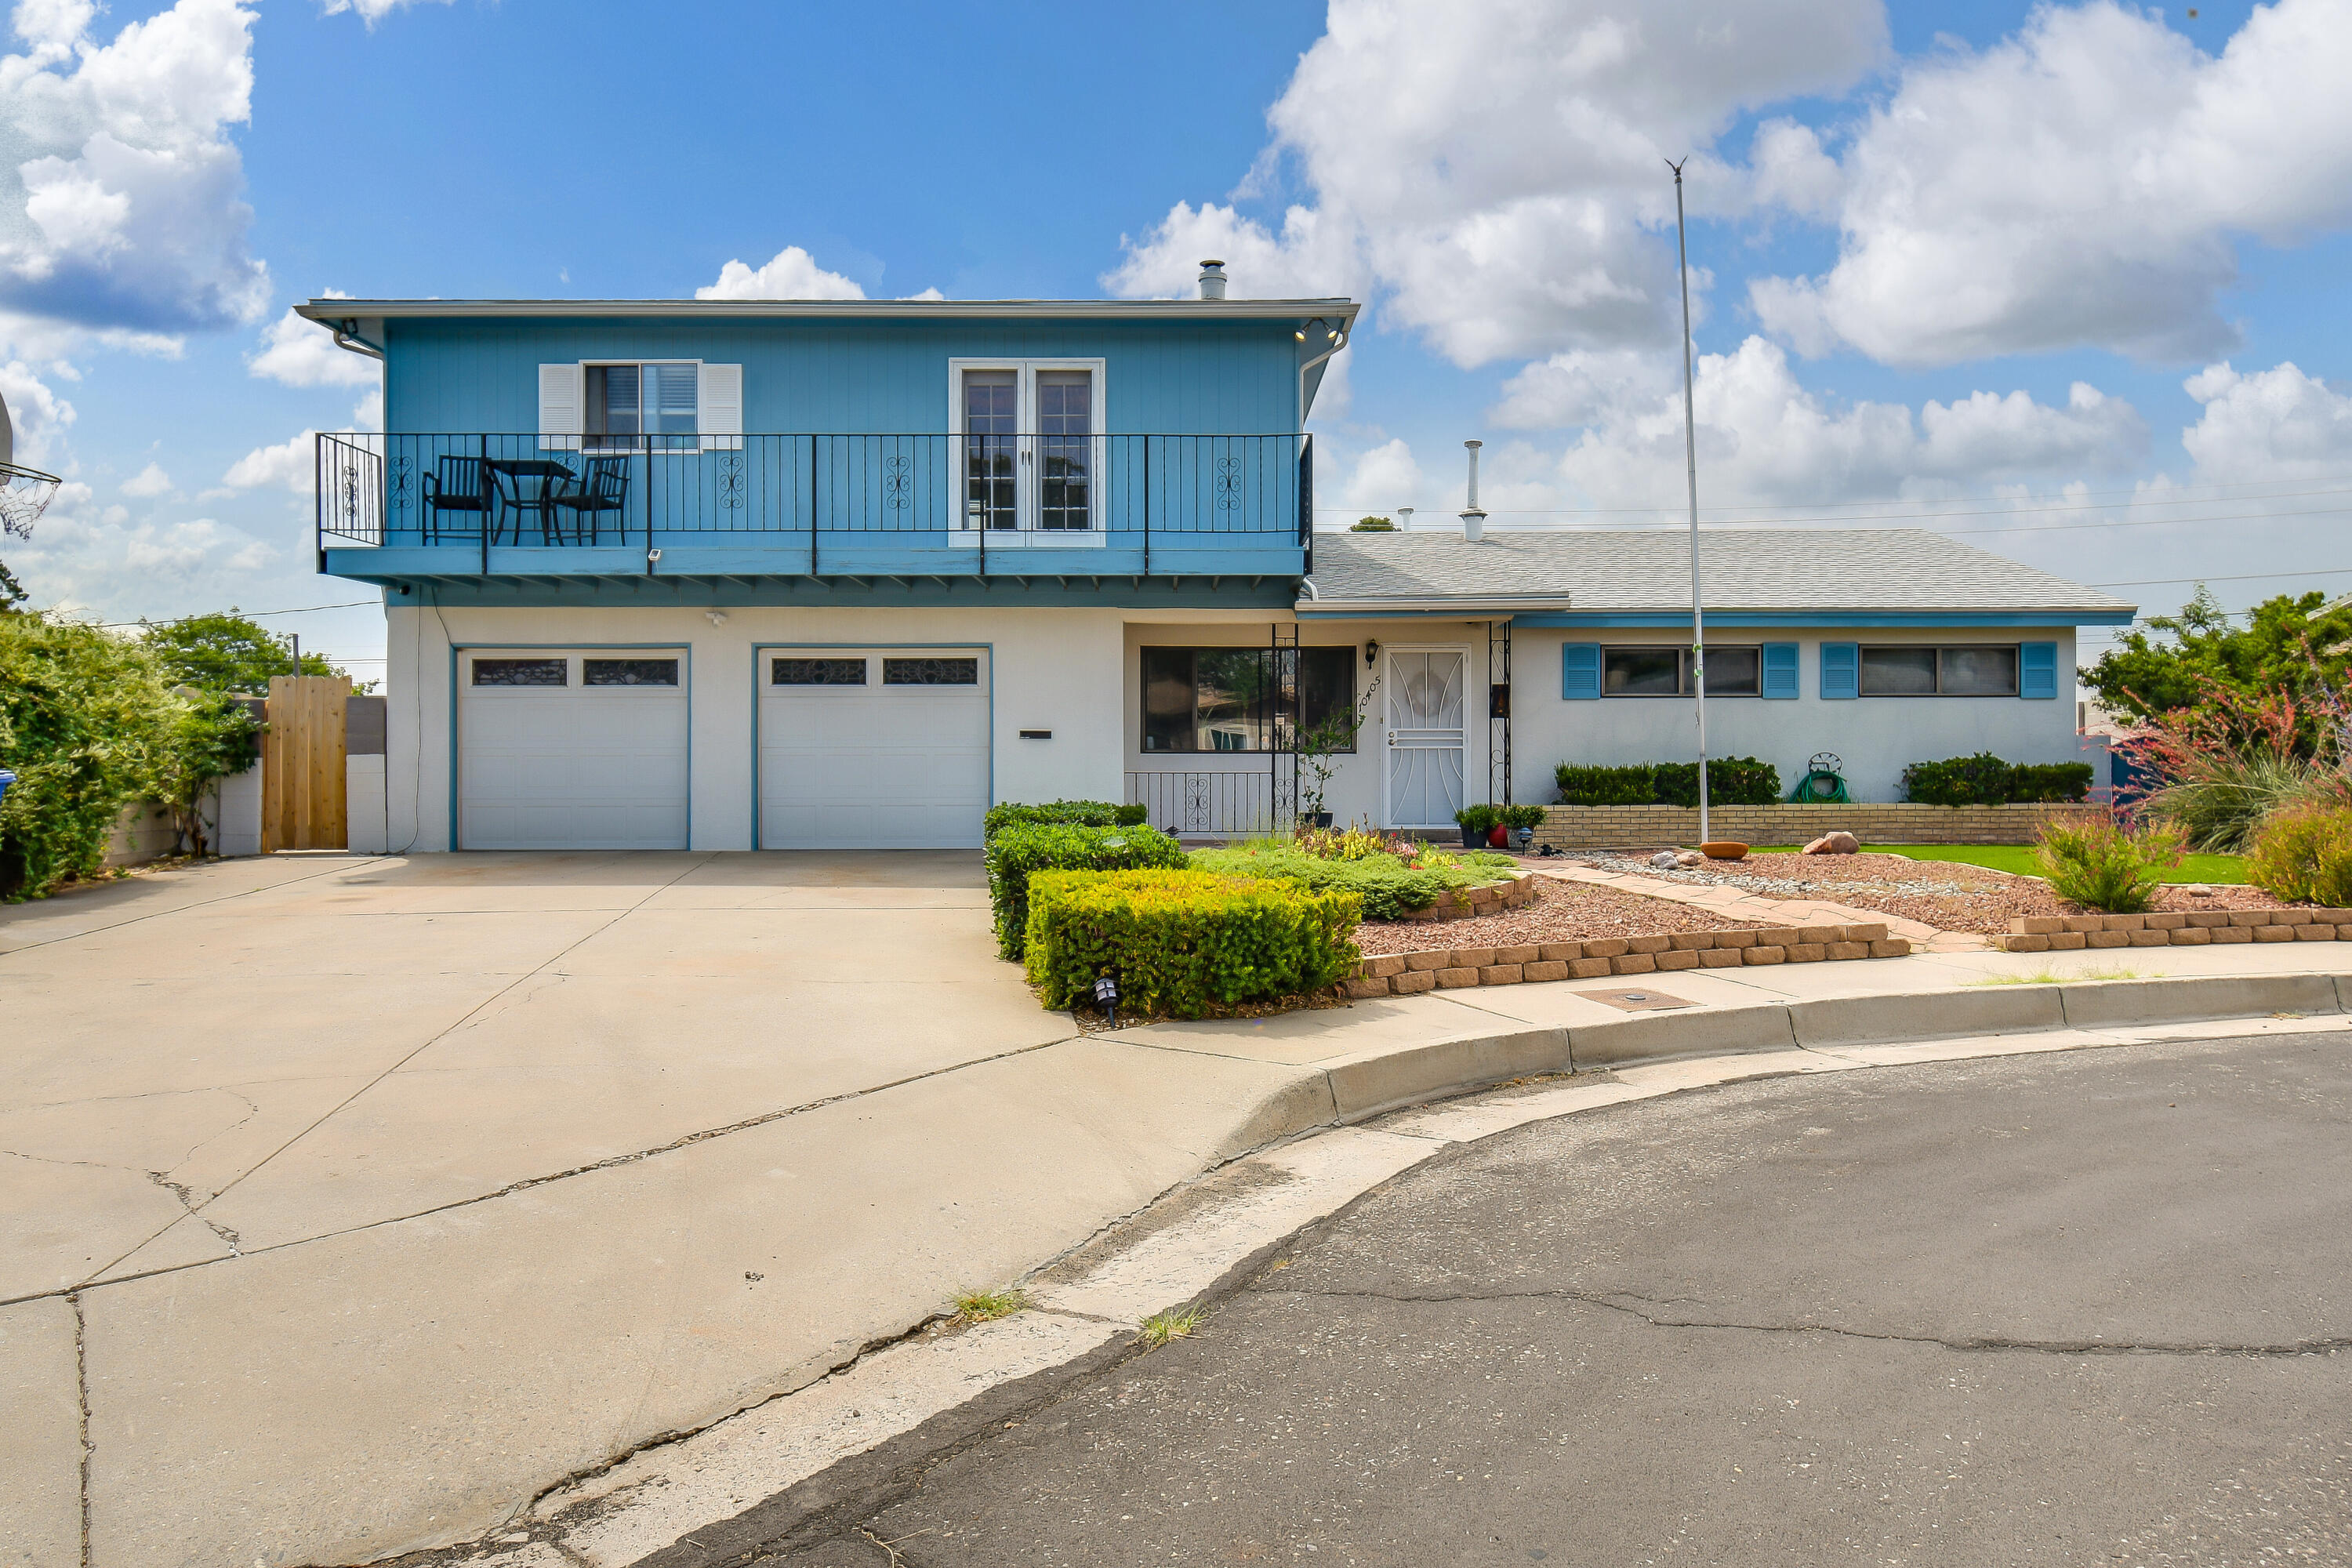 Beautiful Home In Established Neigborhood On Cul De Sac! Don't Miss This Generous Sized Home That Yields 3BR, 2BA, 2+Living Rooms, Dining Area, 2CG & More! This House Opens With A Light & Bright Formal Dining Area And Leads Into The Kitchen Where You Will Find Lots Of Cabinets & Counter Space, Black Steel Appliances, Kitchen Island, Over Looking The Living Area. The Living Area Offers A Cozy Fireplace And Built In Book Shelves. Enjoy The Master Bedroom That Has Lots Of Space,And Master Bath W/ Stand Alone Shower. Two Spacious Bedrooms To Follow All On The Main Level. Upstairs You Will Find A HUGE Bonus/Flex Room That Can Be Used As Office,  Living Space, Or Whatever You Come Up With!Outside Is Perfect For Entertaining, W/Covered Flagstone Patio & Mature Flowers For Color. Don't Miss Out!